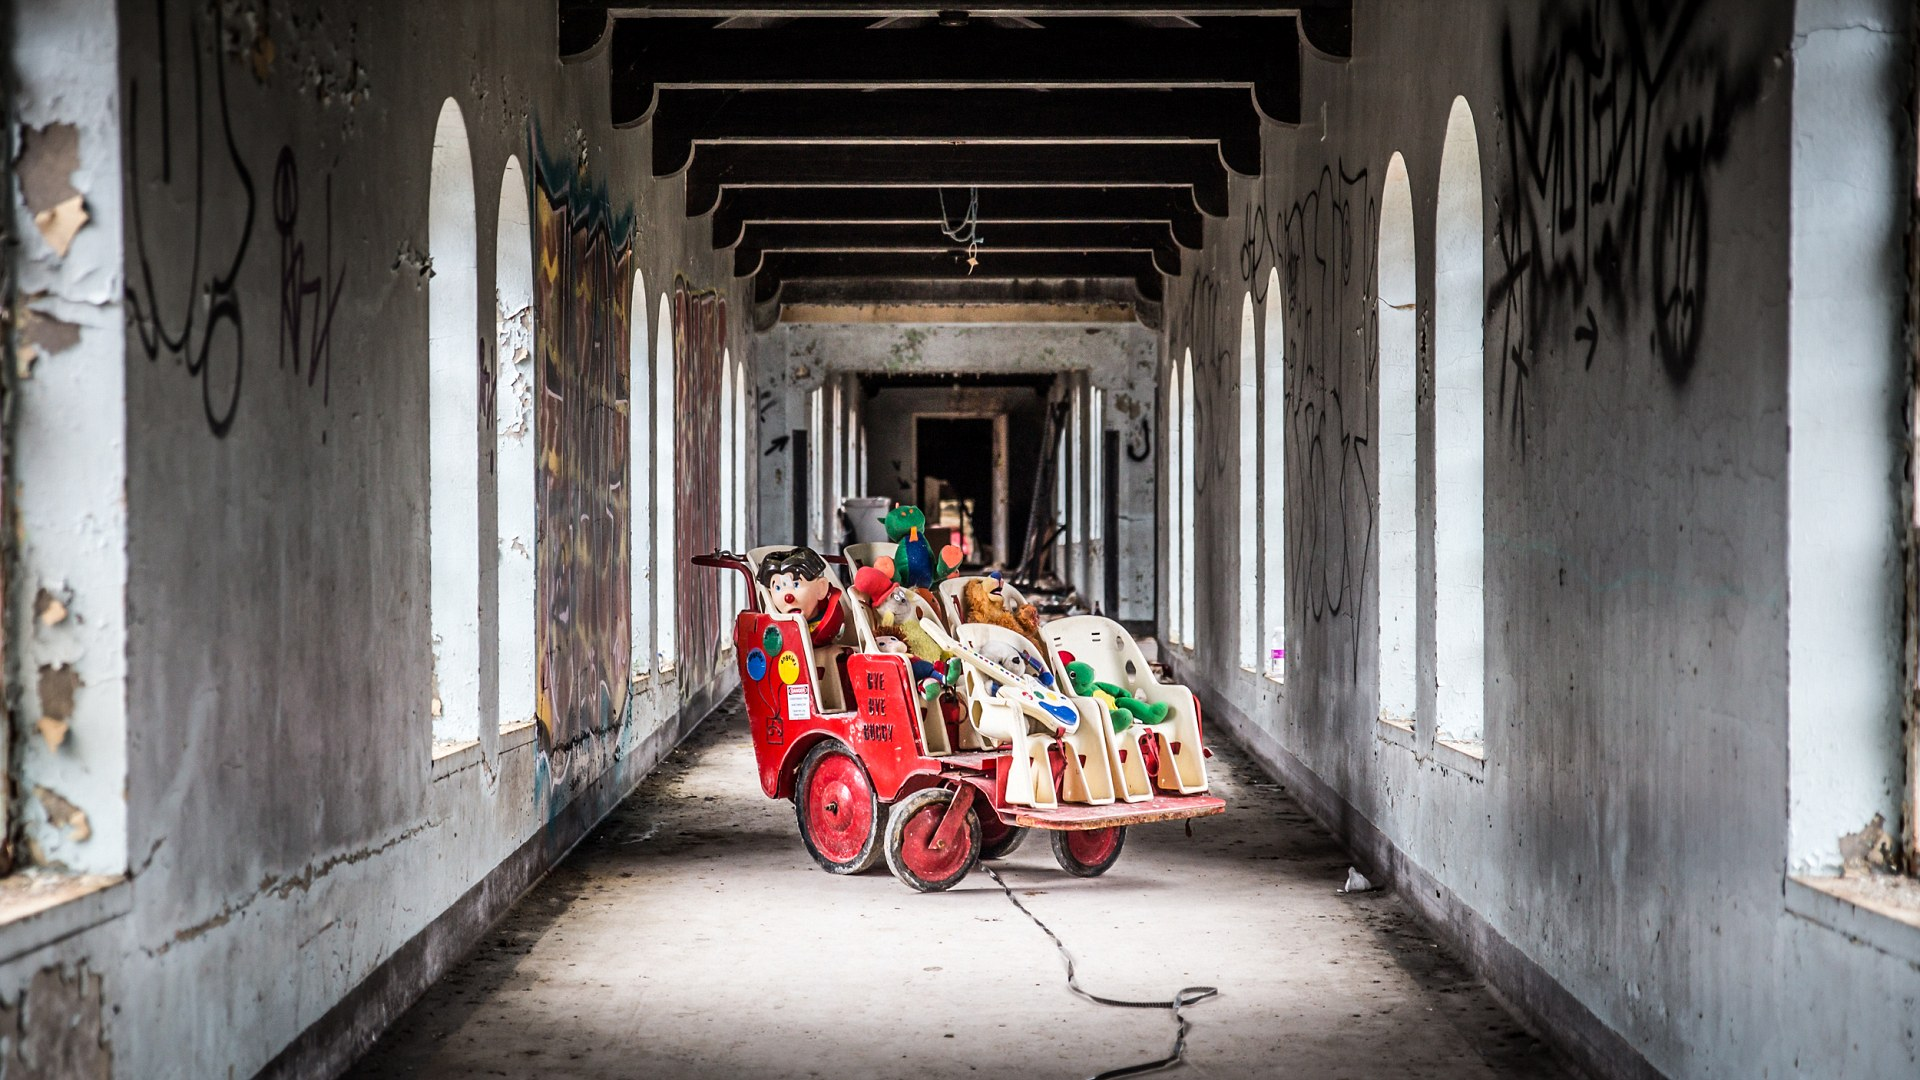 ORANGEBURG, NEW YORK - FEBRUARY 7, 2016: View inside abandoned children's ward at Rockland Psychiatric hospital with eerie toys on cart; Shutterstock ID 400077481